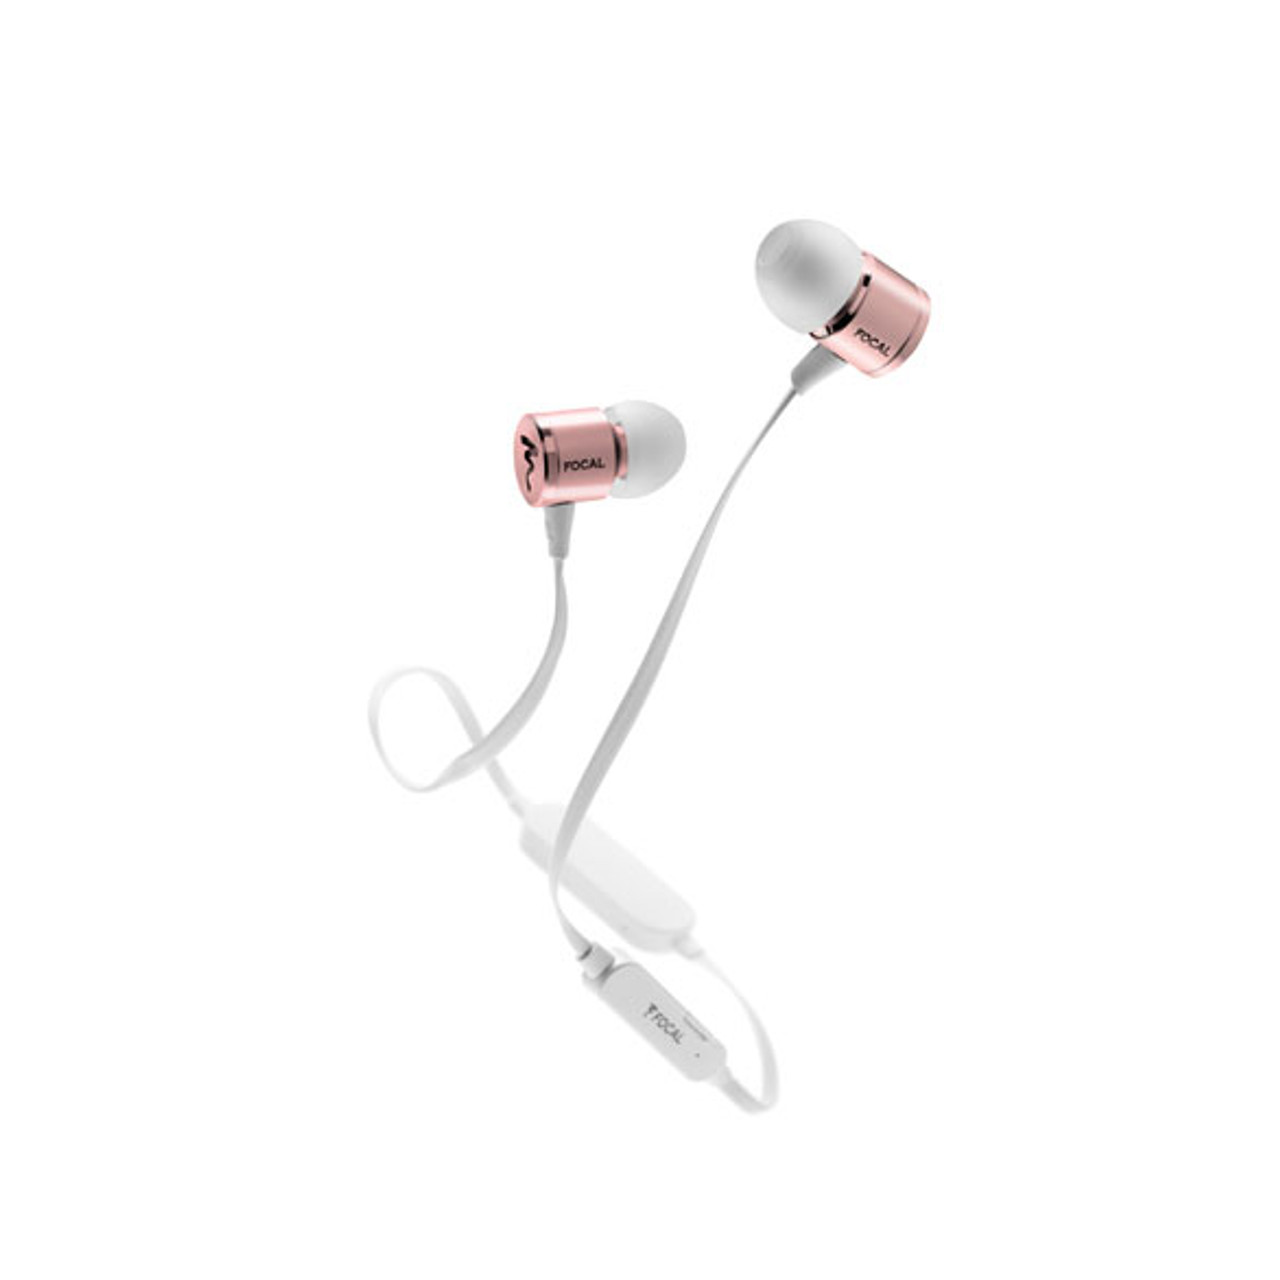 Focal Spark Wireless  In-Ear Headphones w/ Microphone and Control - Your Choice [Black, Silver or Rose Gold]